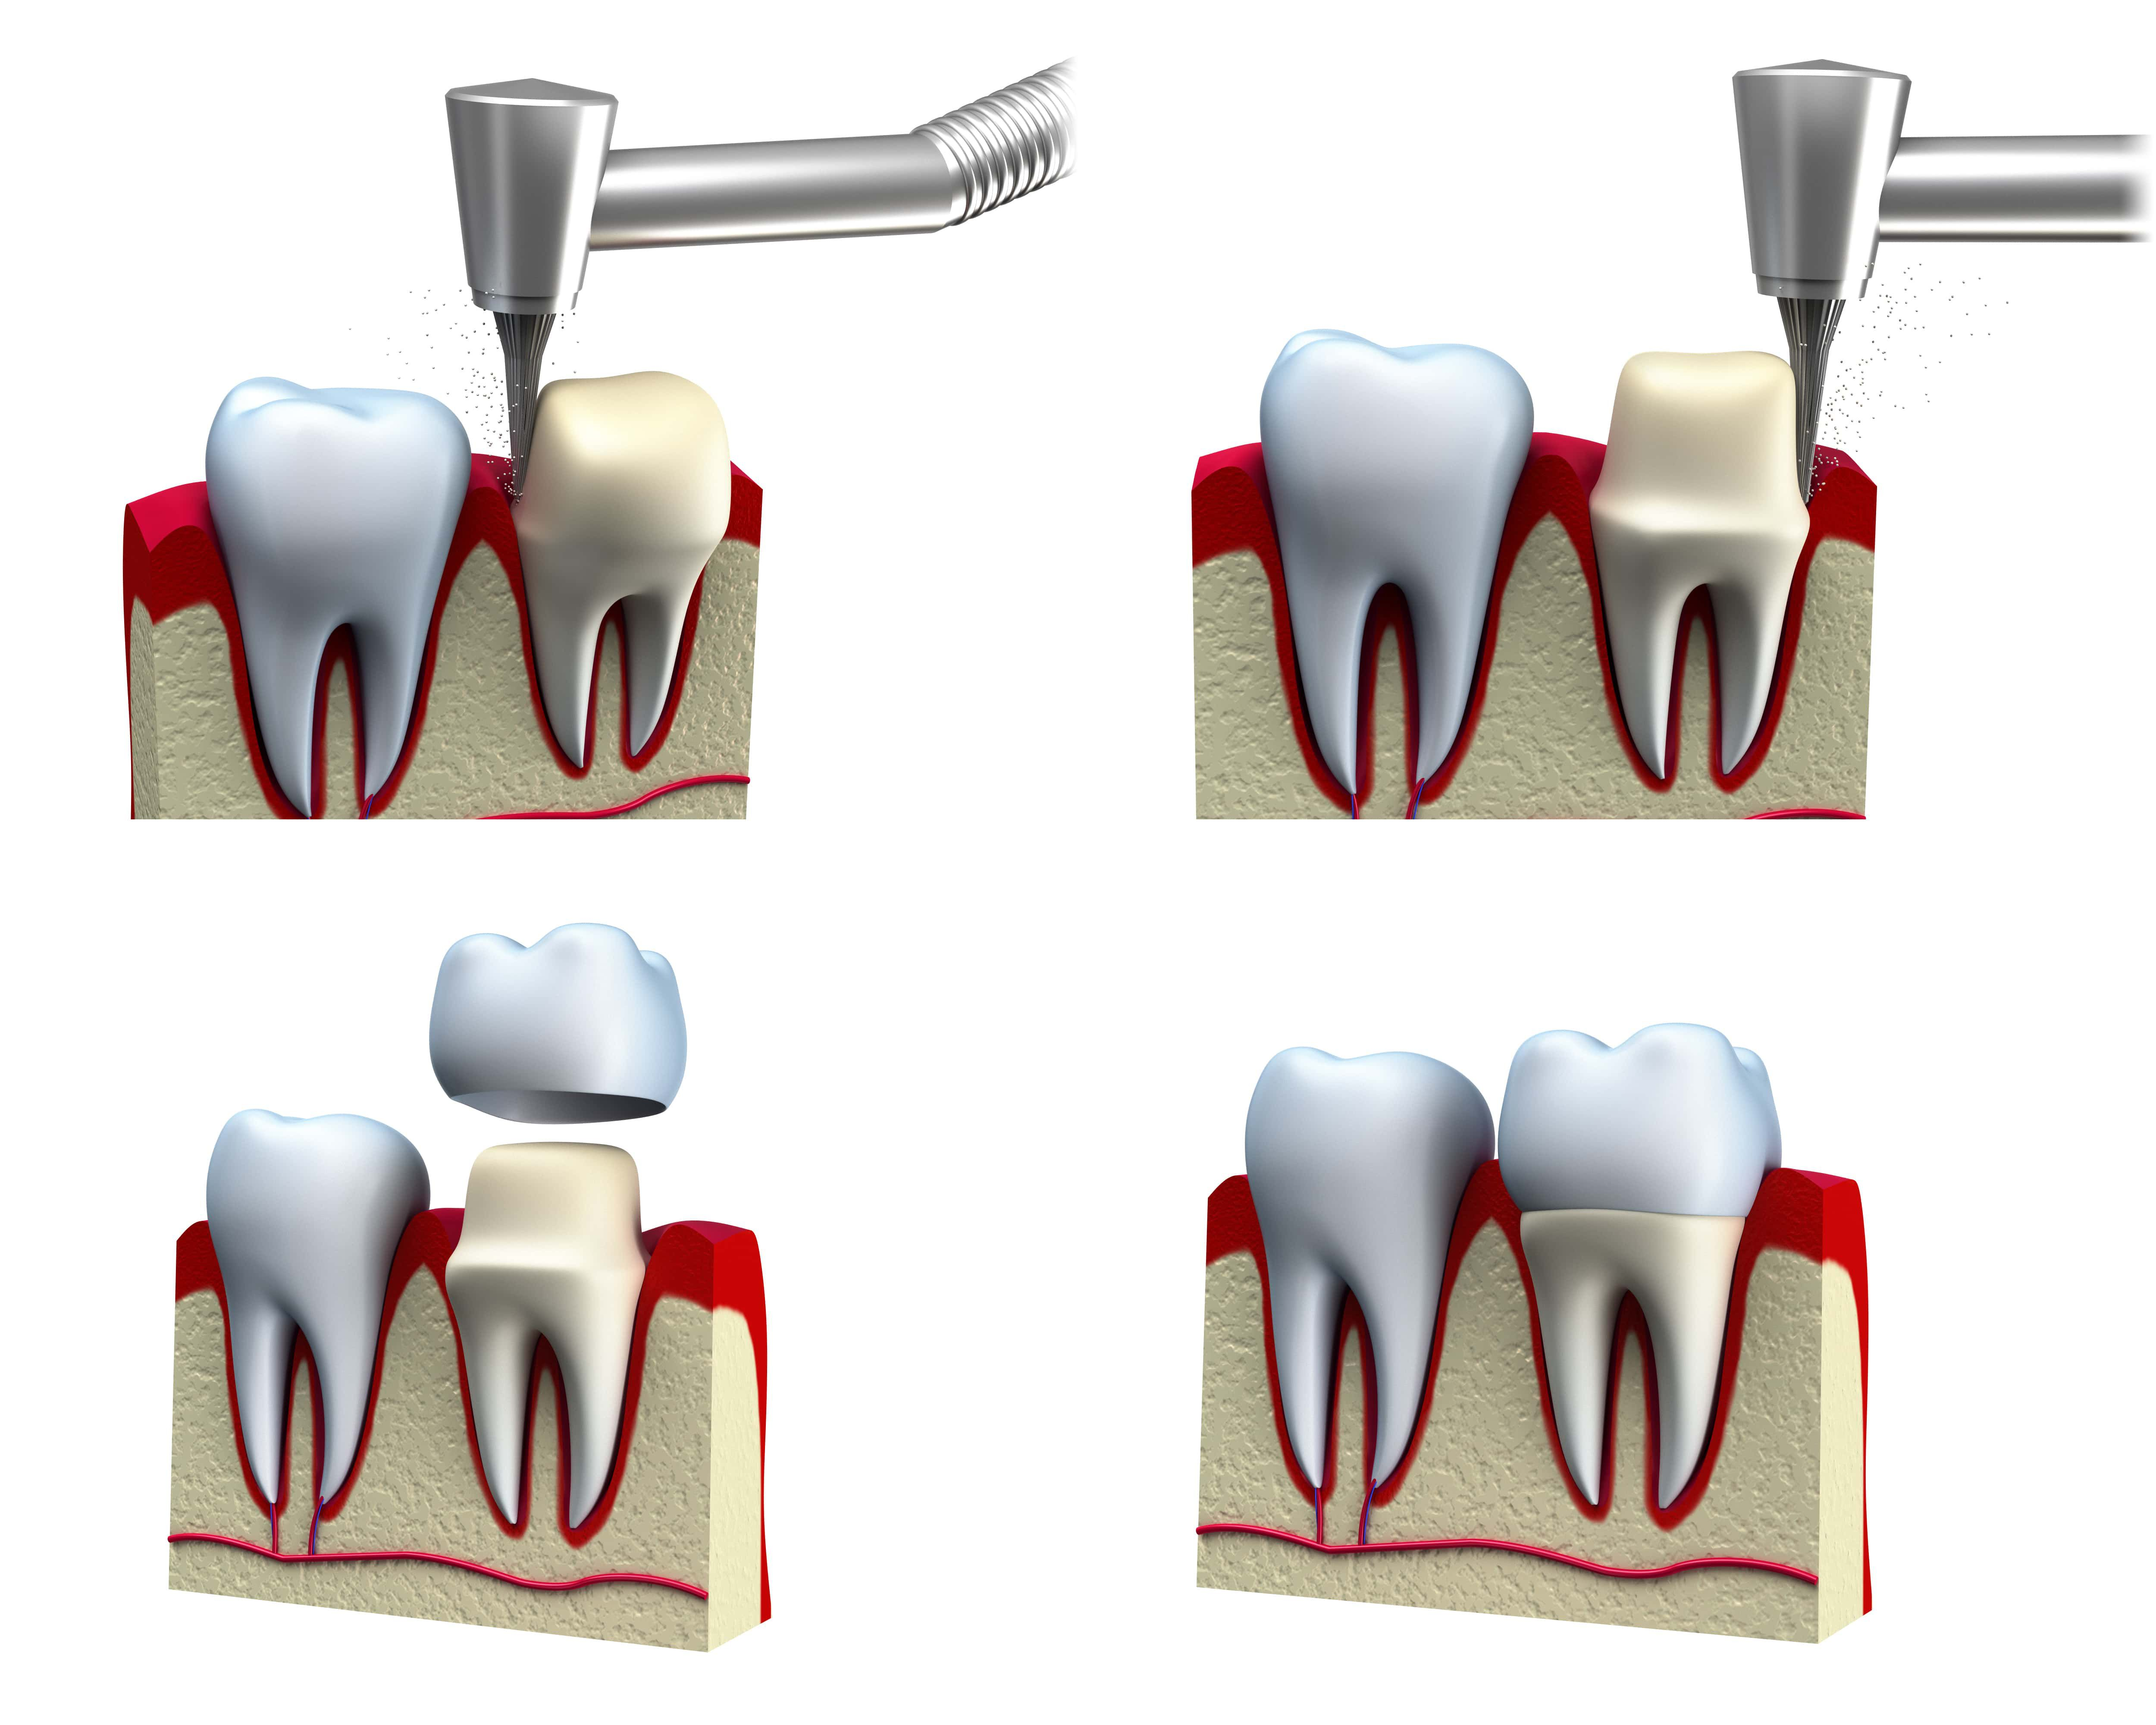 The process of preparing a tooth for a dental crown shown in four steps